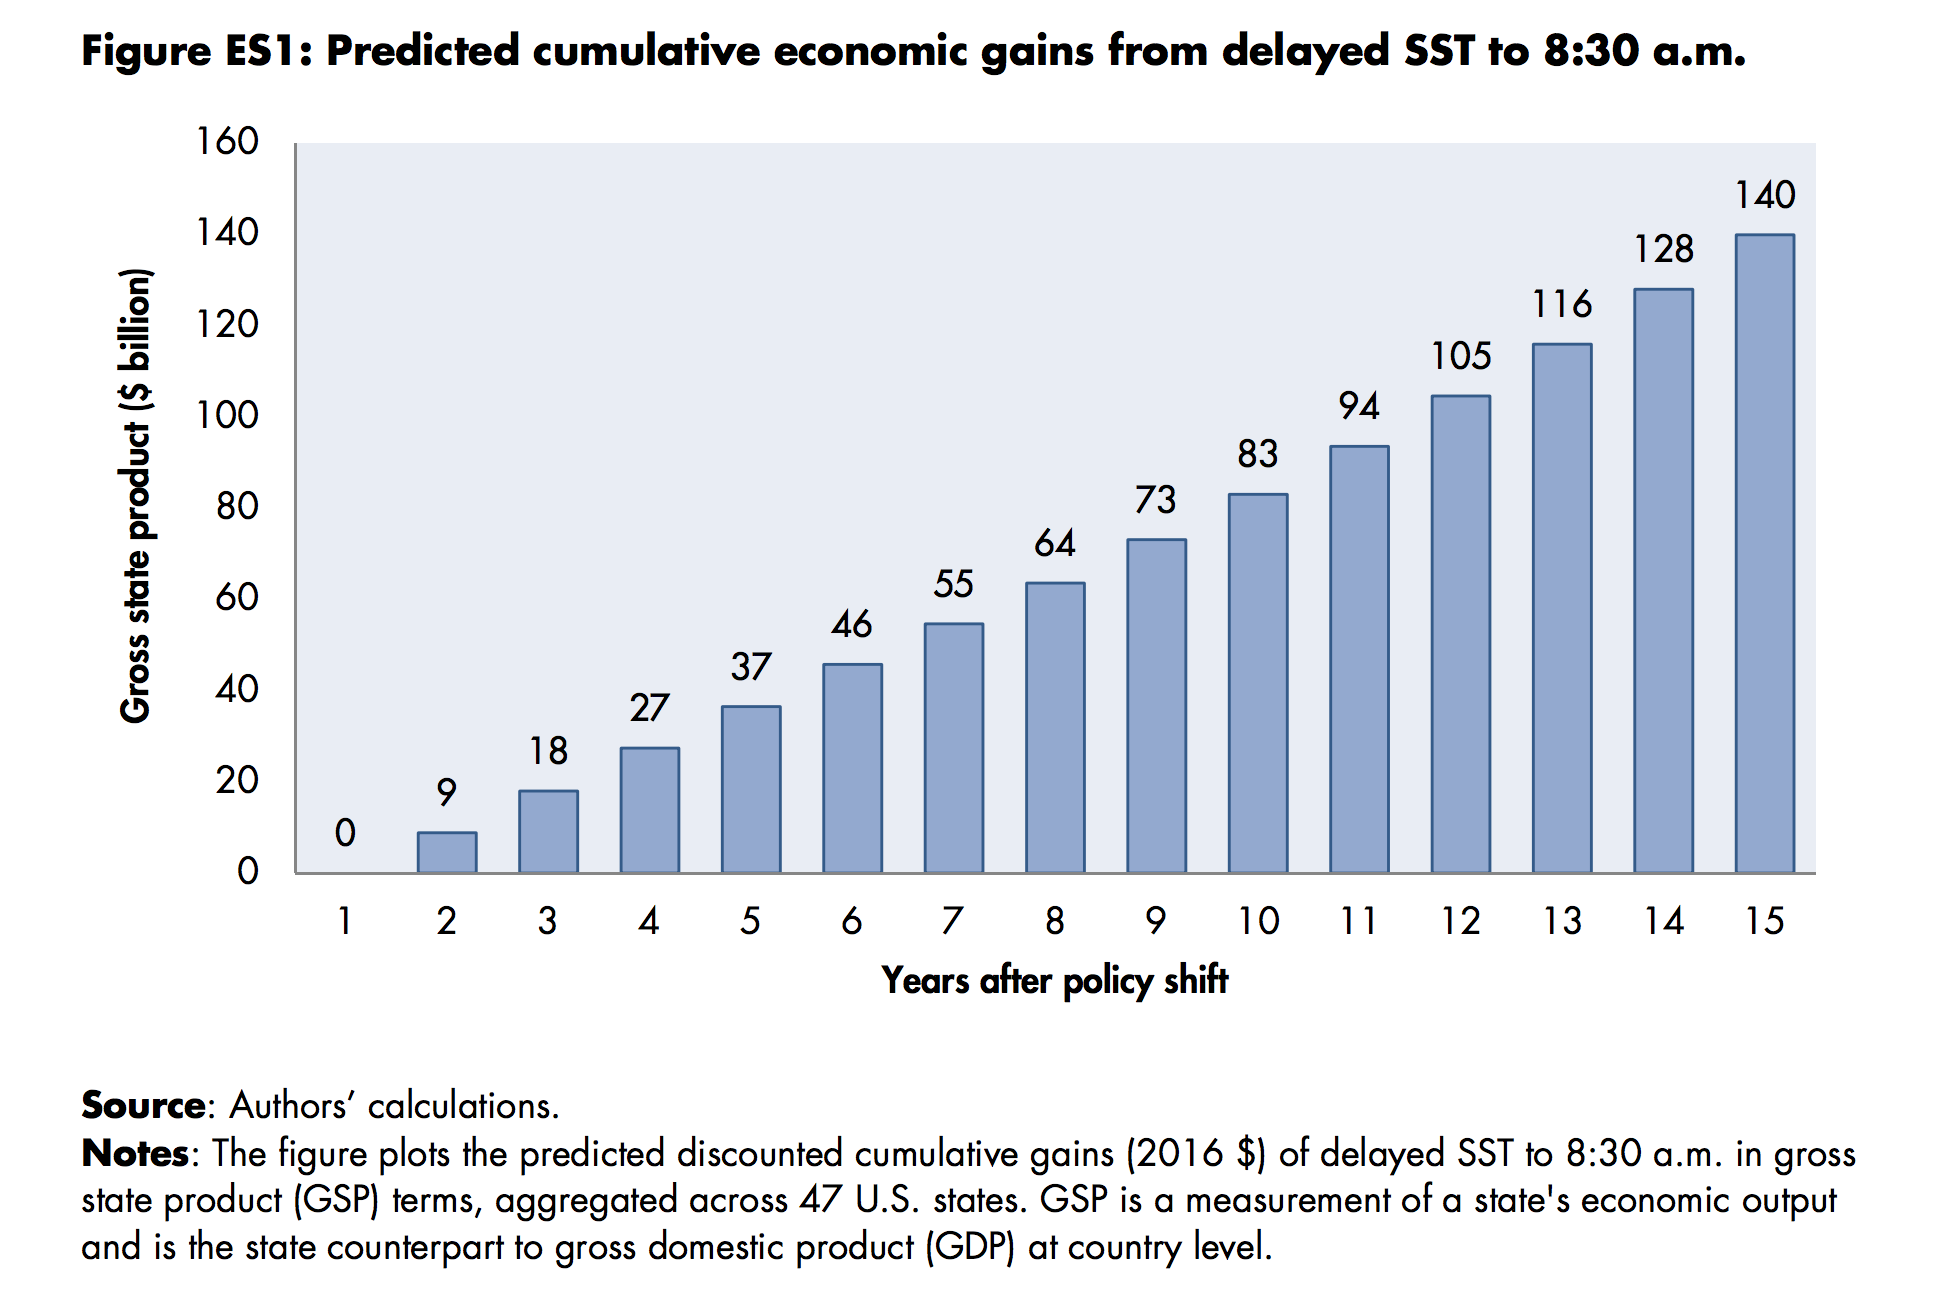 Predicted cumulative economic gains from delayed school time